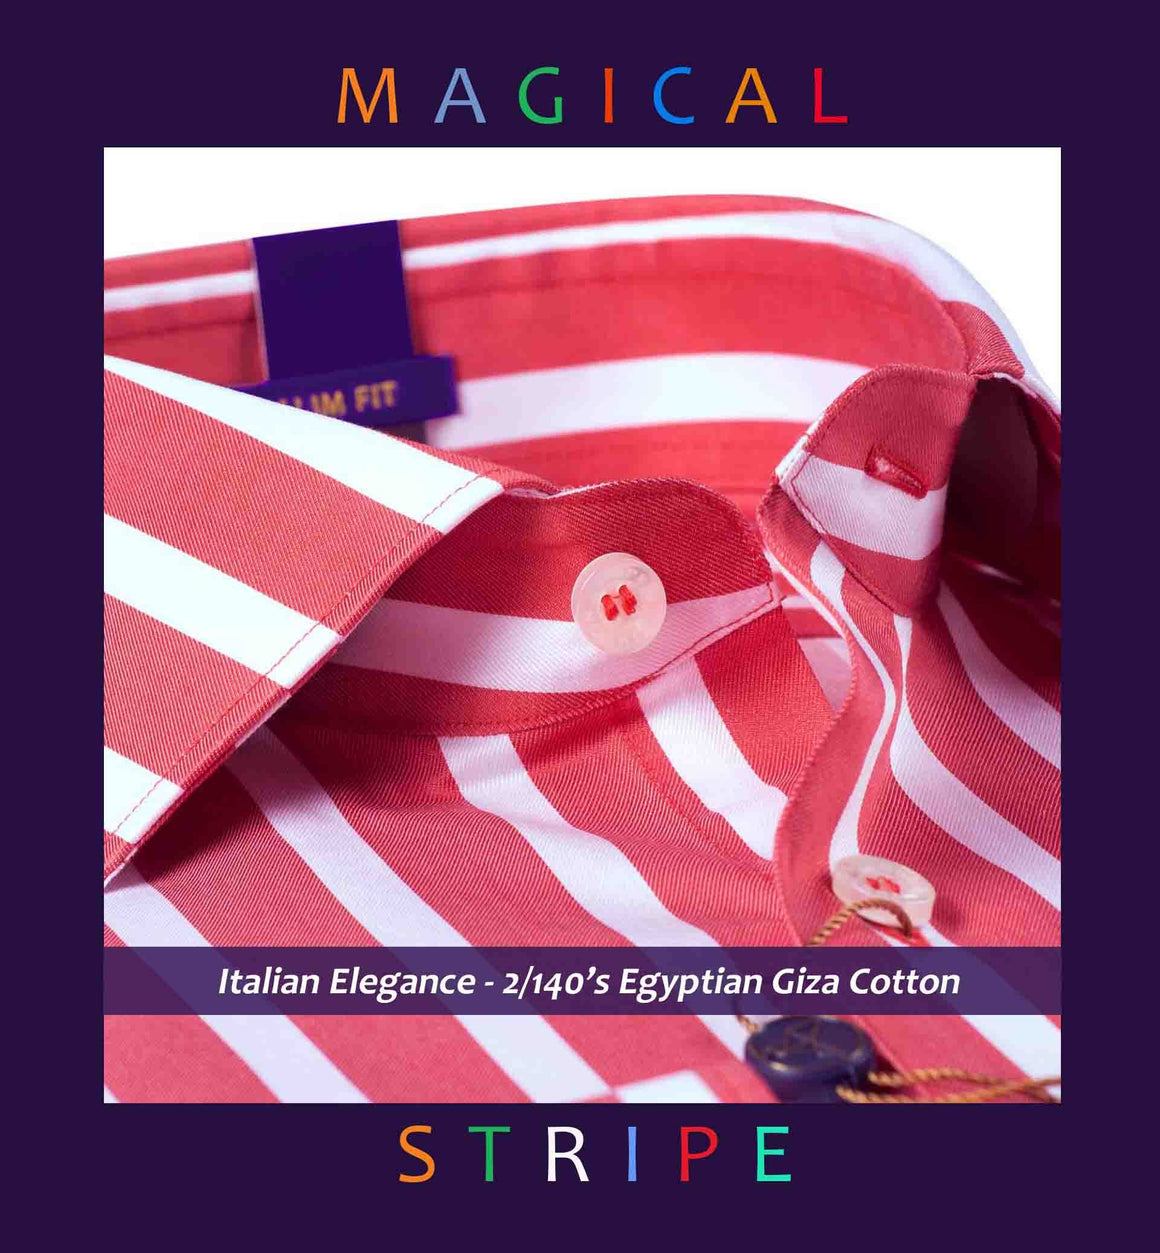 Bilbao- Coral Red Magical Stripe